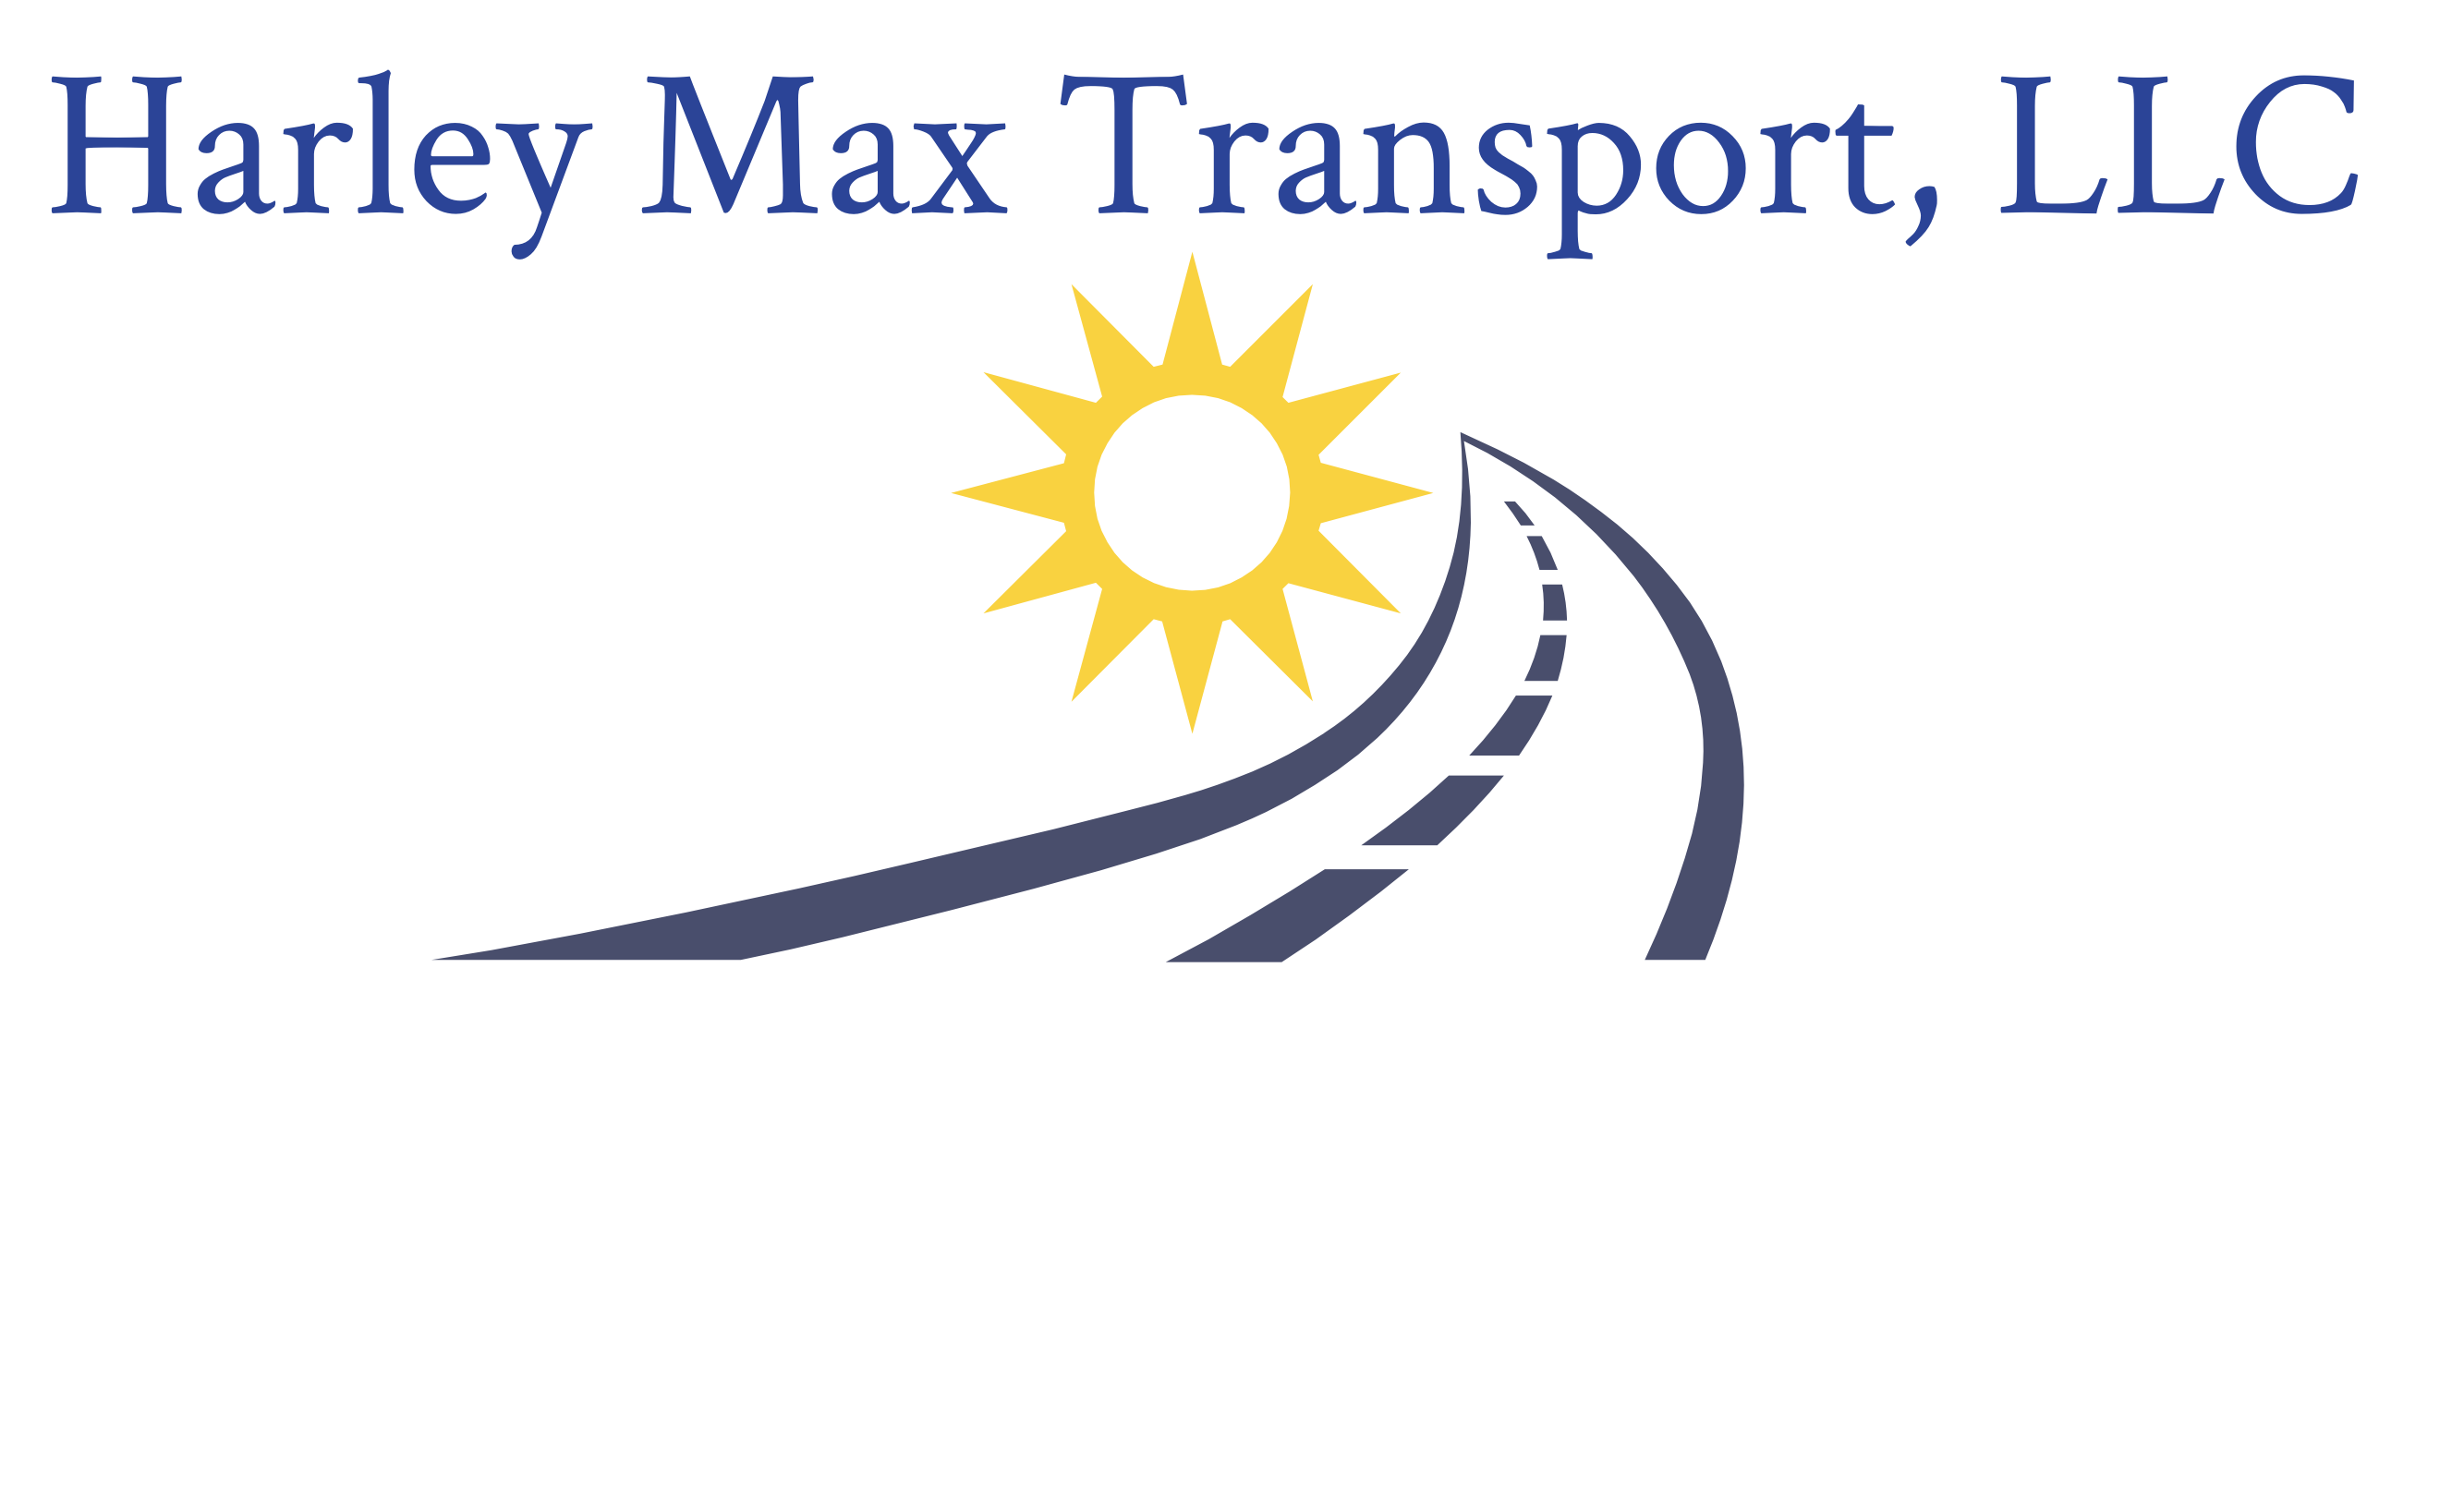 Harley Max Transport, LLC